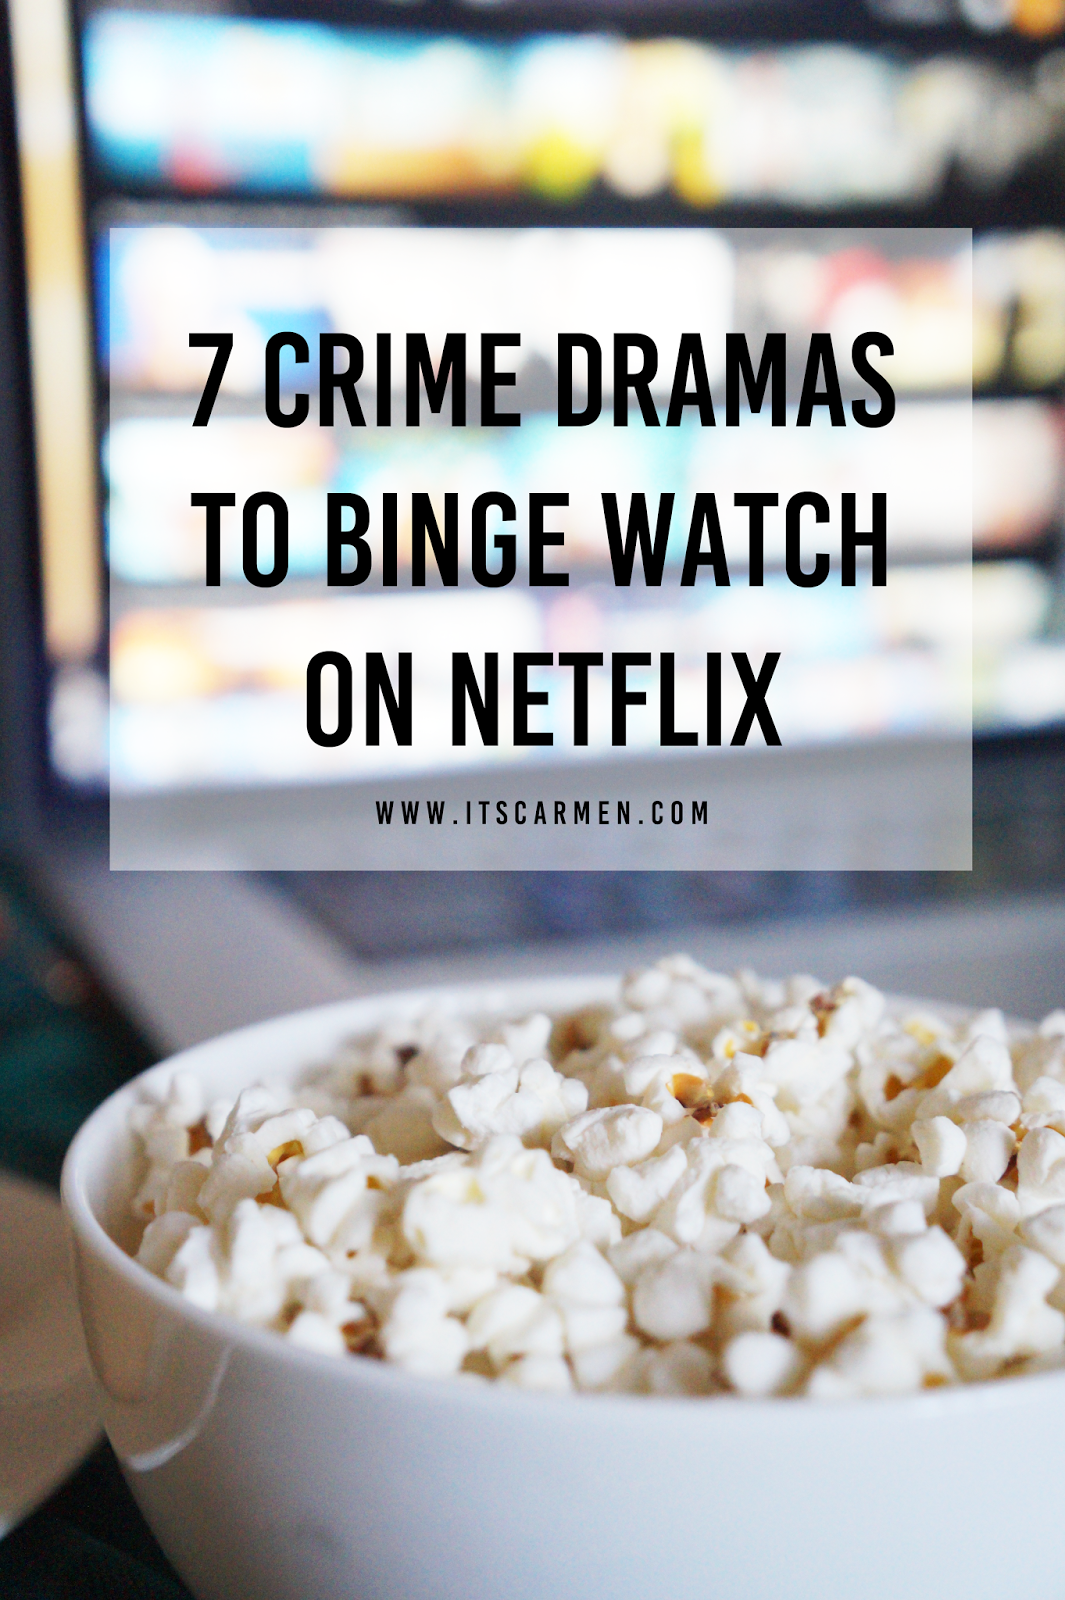 Crime dramas to binge watch on Netflix